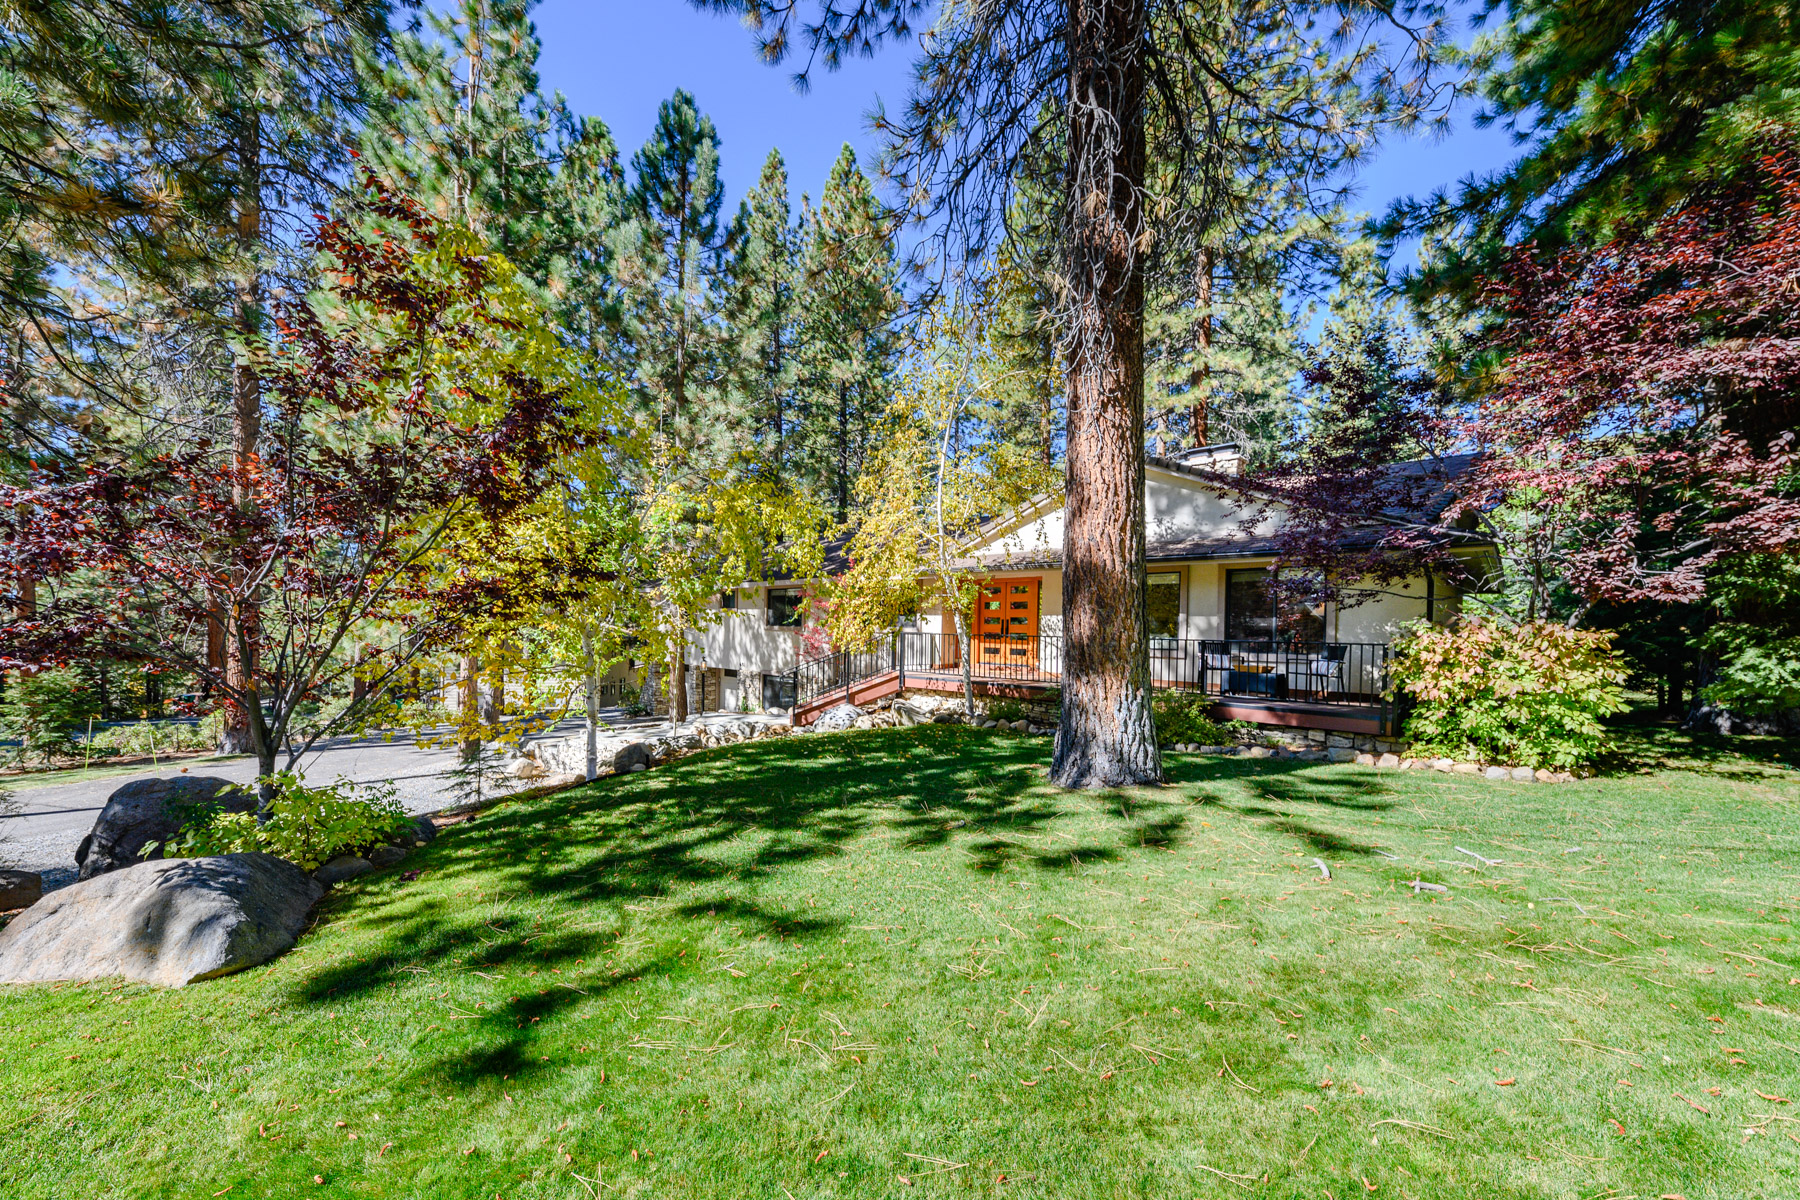 Single Family Homes for Active at 681 David Way, Incline Village, Nevada 681 David Way Incline Village, Nevada 89451 United States